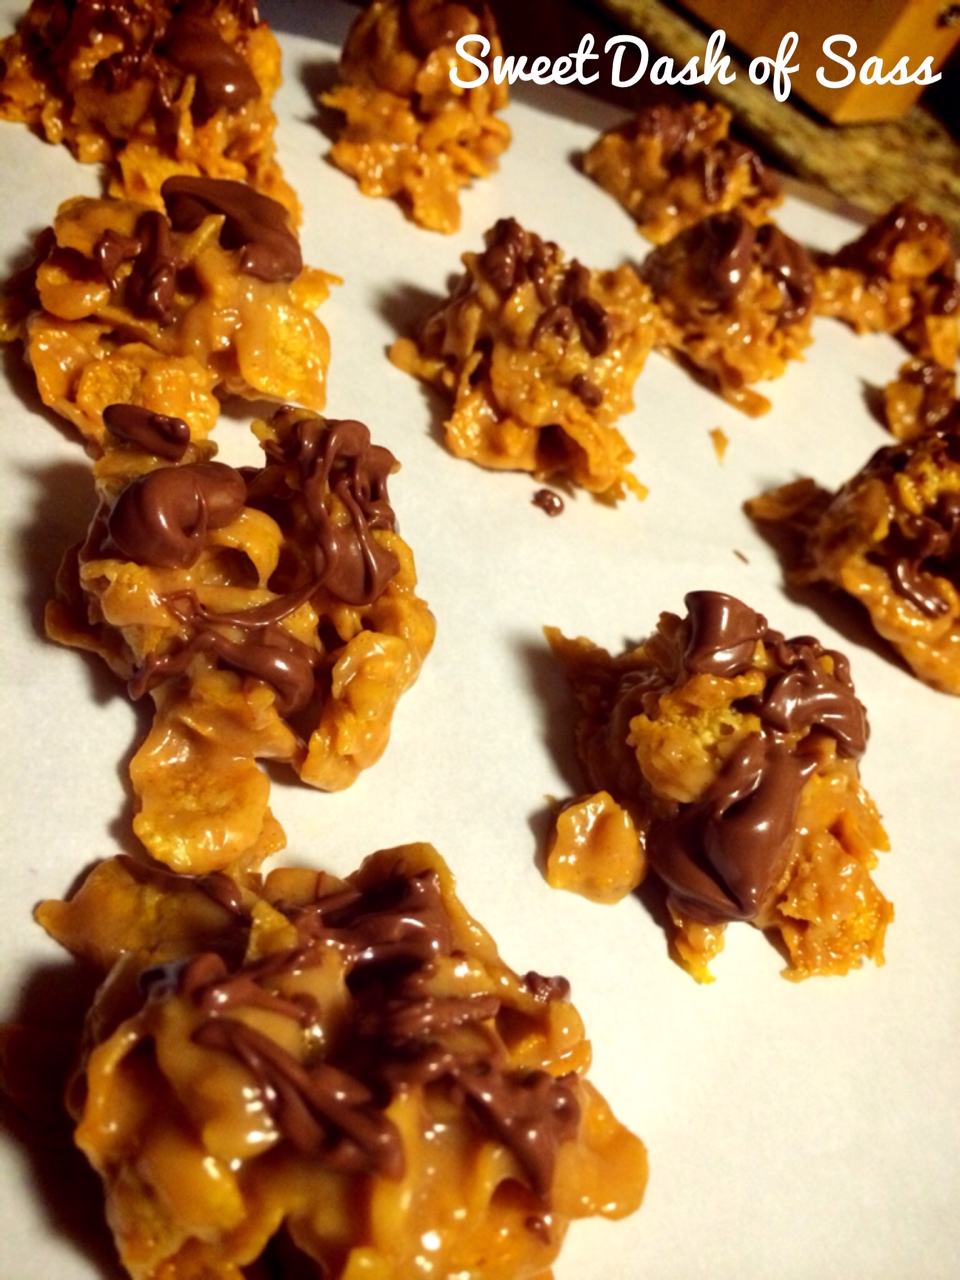 Peanut butter frosted flakes treats for Easy sweet treats with peanut butter